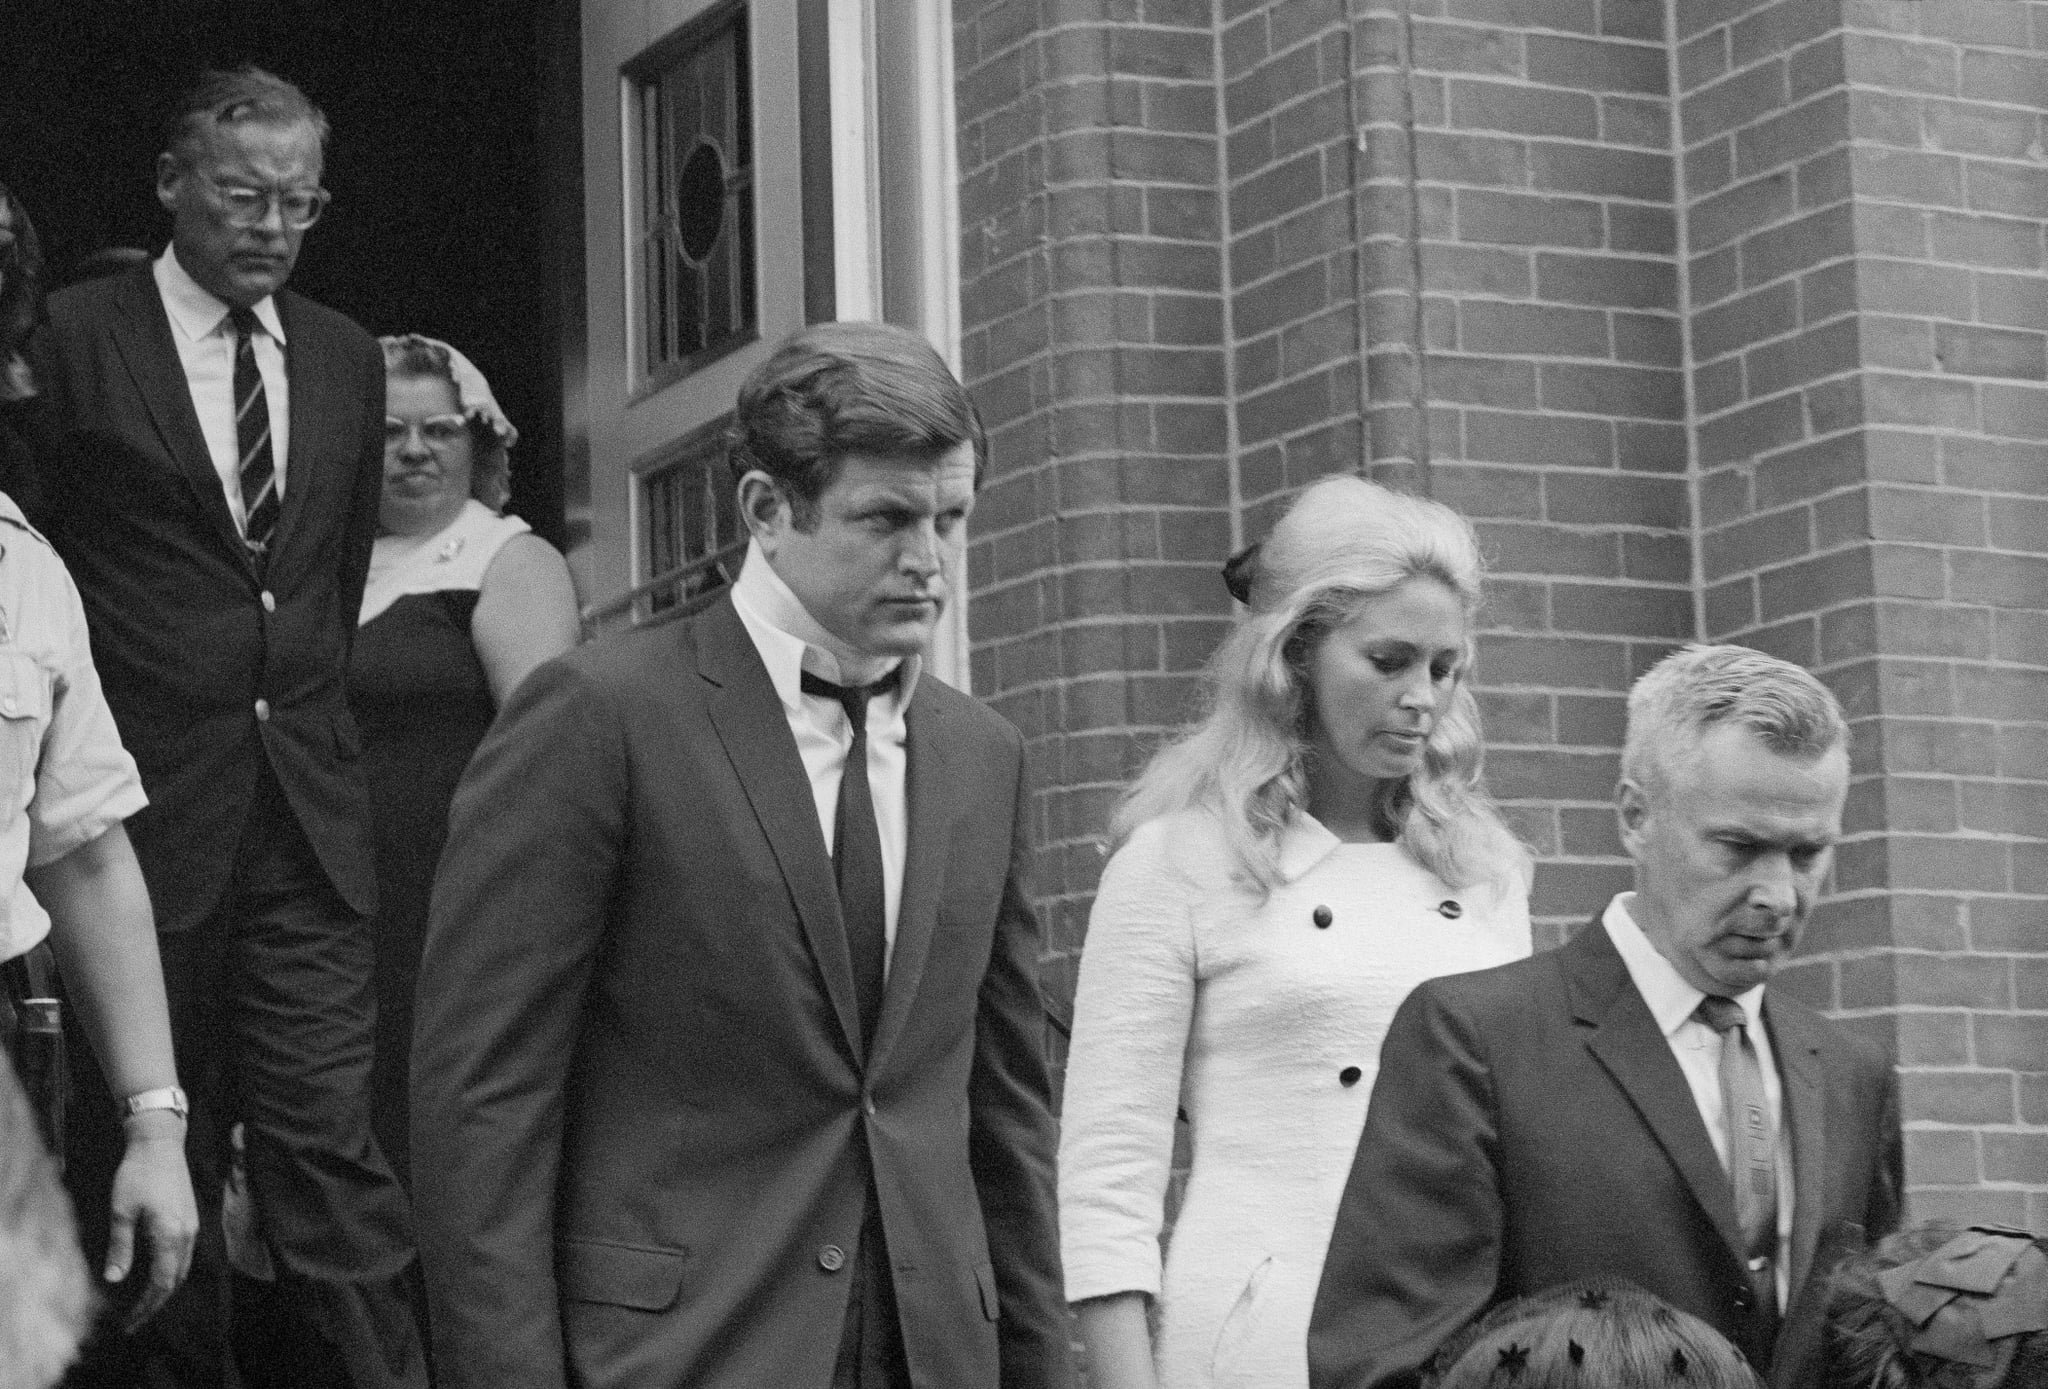 (Original Caption) Plymouth, PA: Sen. Edward Kennedy leaves St. Vincent's Church with his wife, Joan after attending the funeral Mass celebrated for Mary Jo Kopechne, who was killed in an auto crash with the Senator. Mary Kopechne was on the secretarial staff of the late Sen. Robert Kennedy.